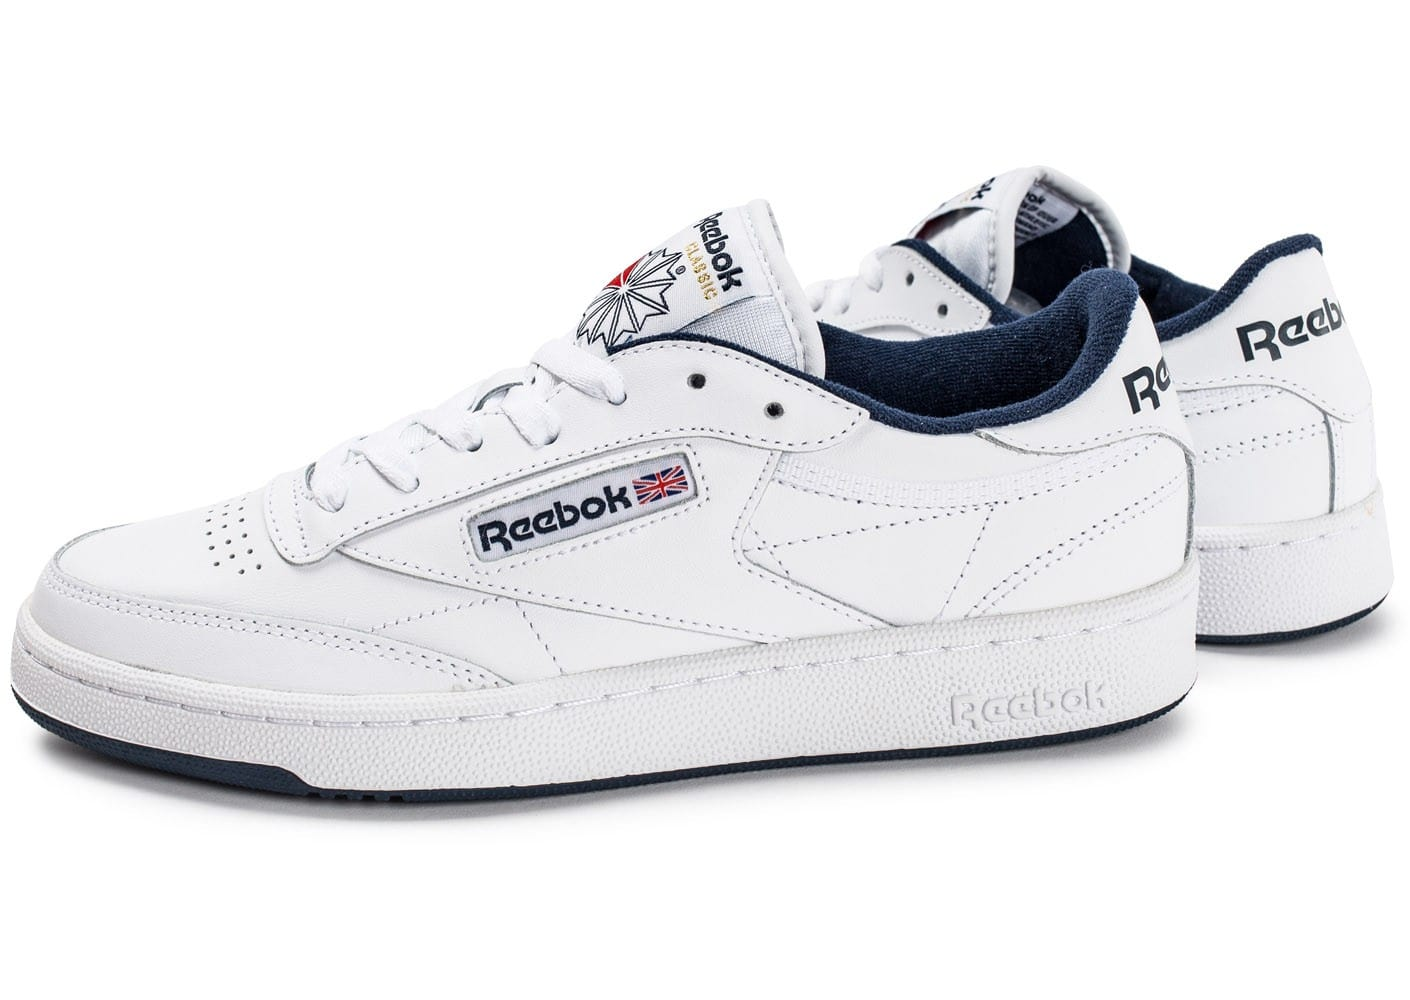 Reebok Baskets basses Club C85 Blanc/Bleu